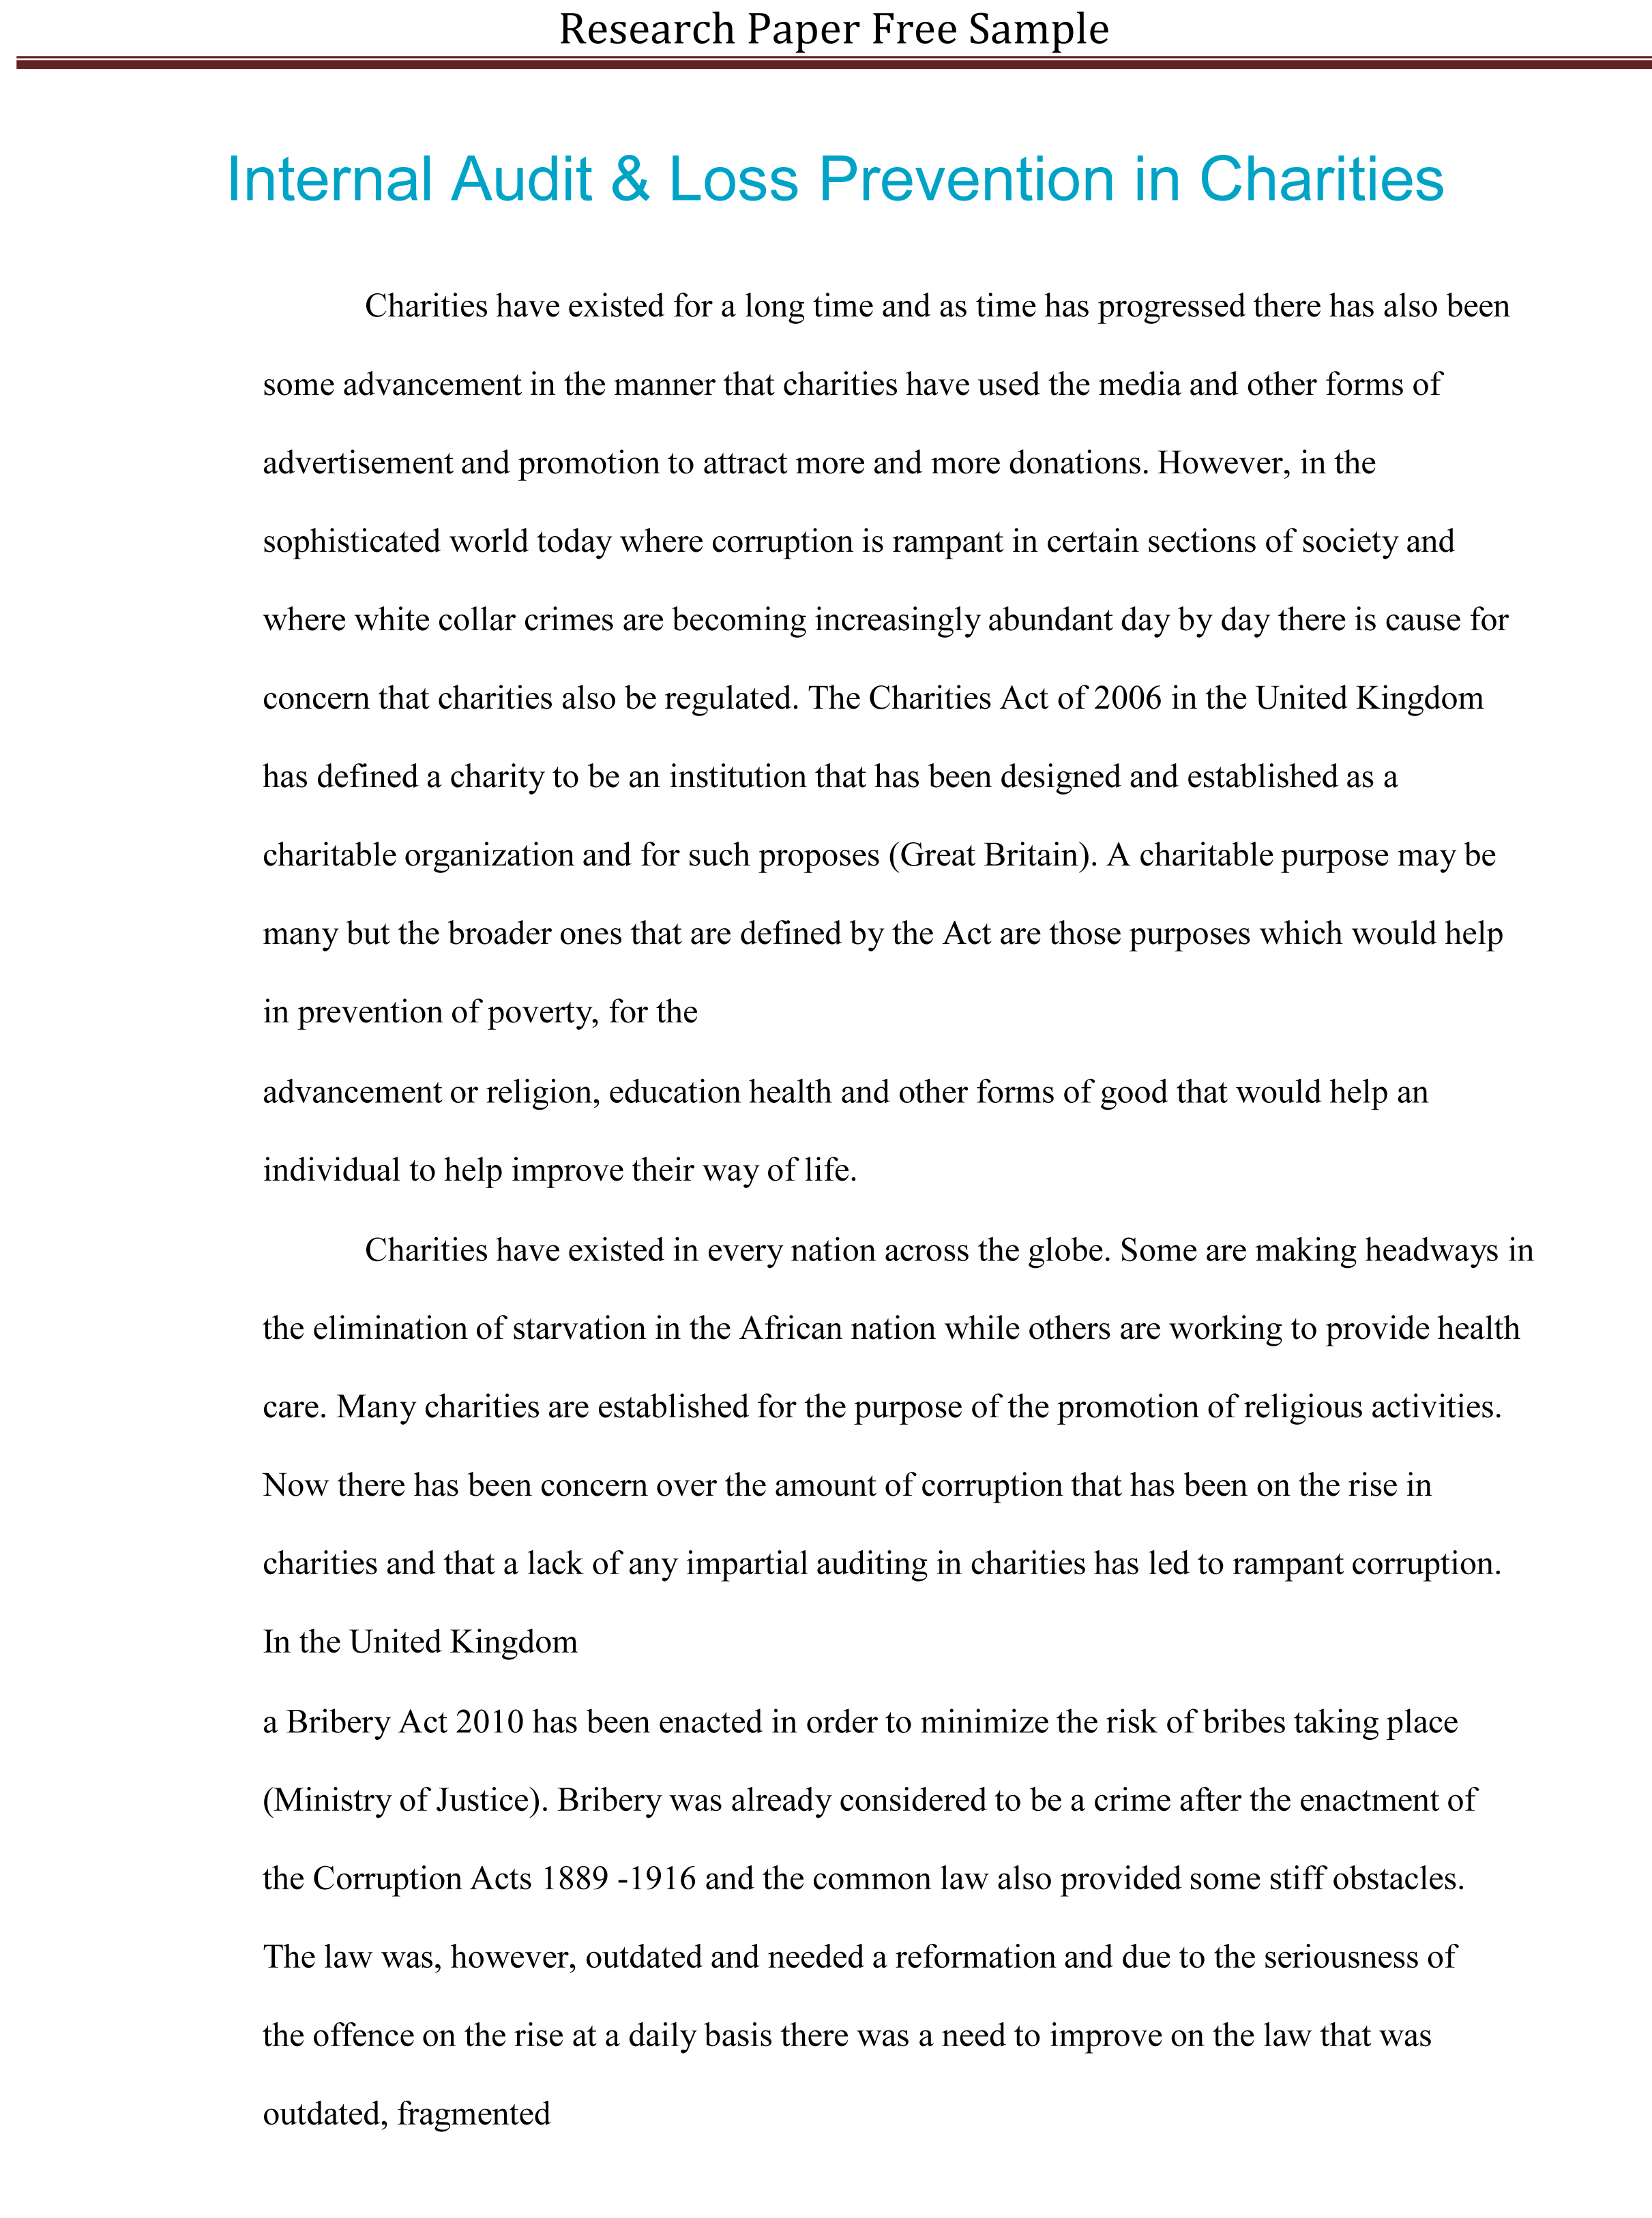 010 Writing An Introduction To Research Paper Help Paragraph Top A The Scientific Middle School For Full